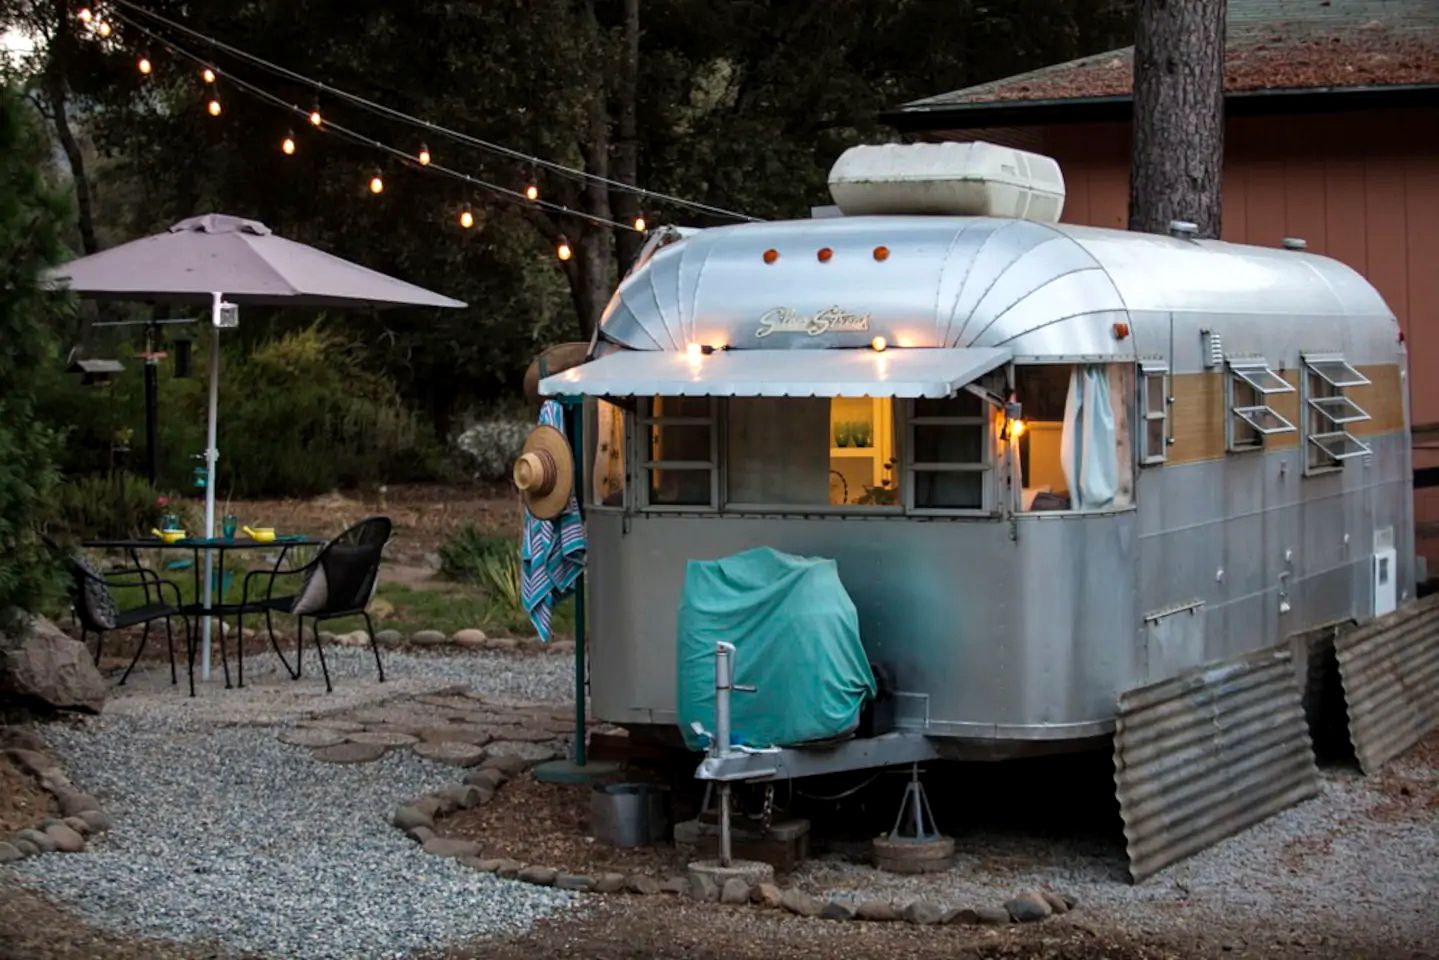 Airstreams (Oakhurst, California, United States)